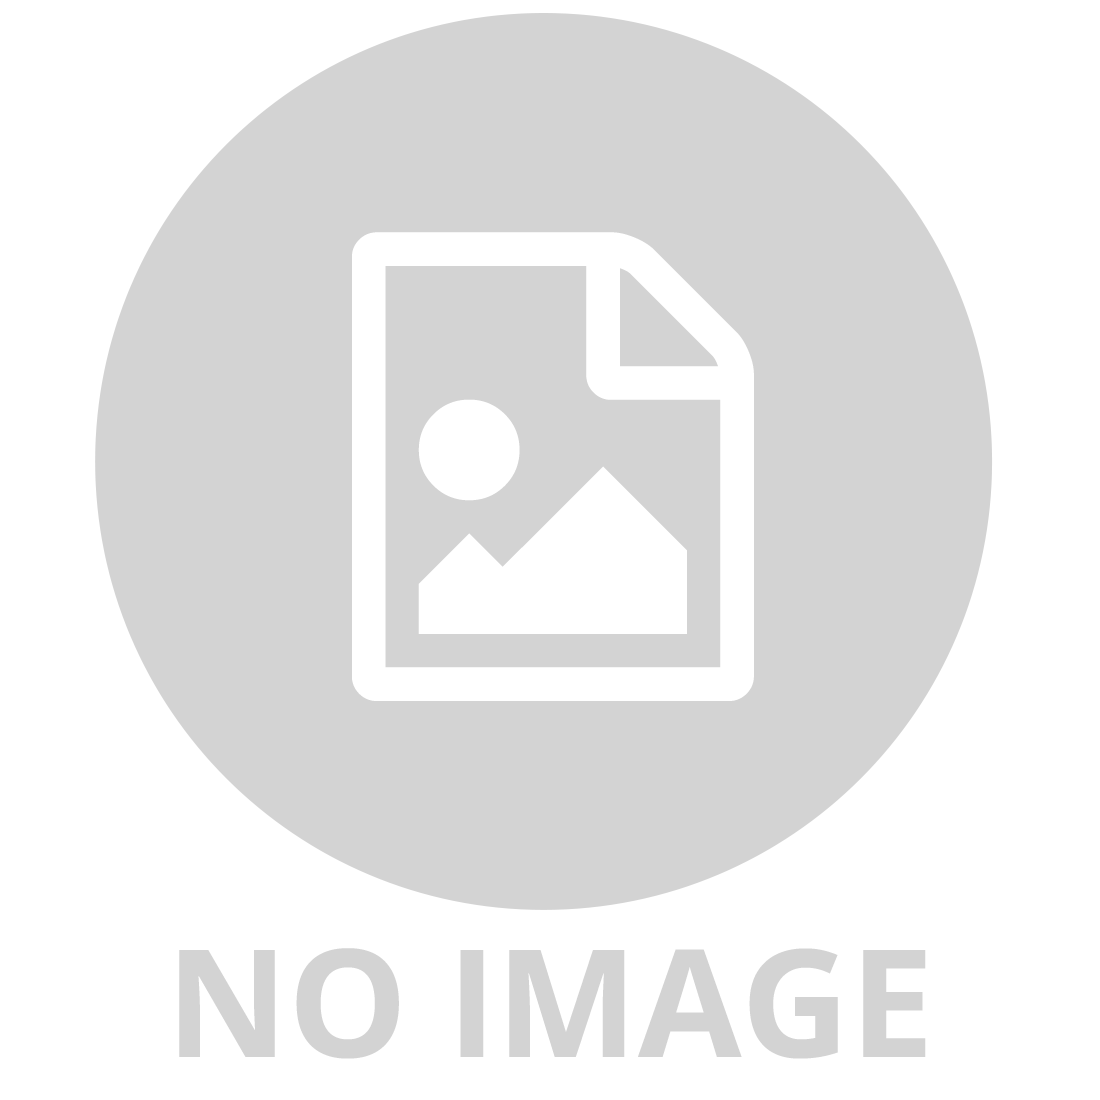 BKIDS TWIST AND PLAY CATERPILLAR RATTLE